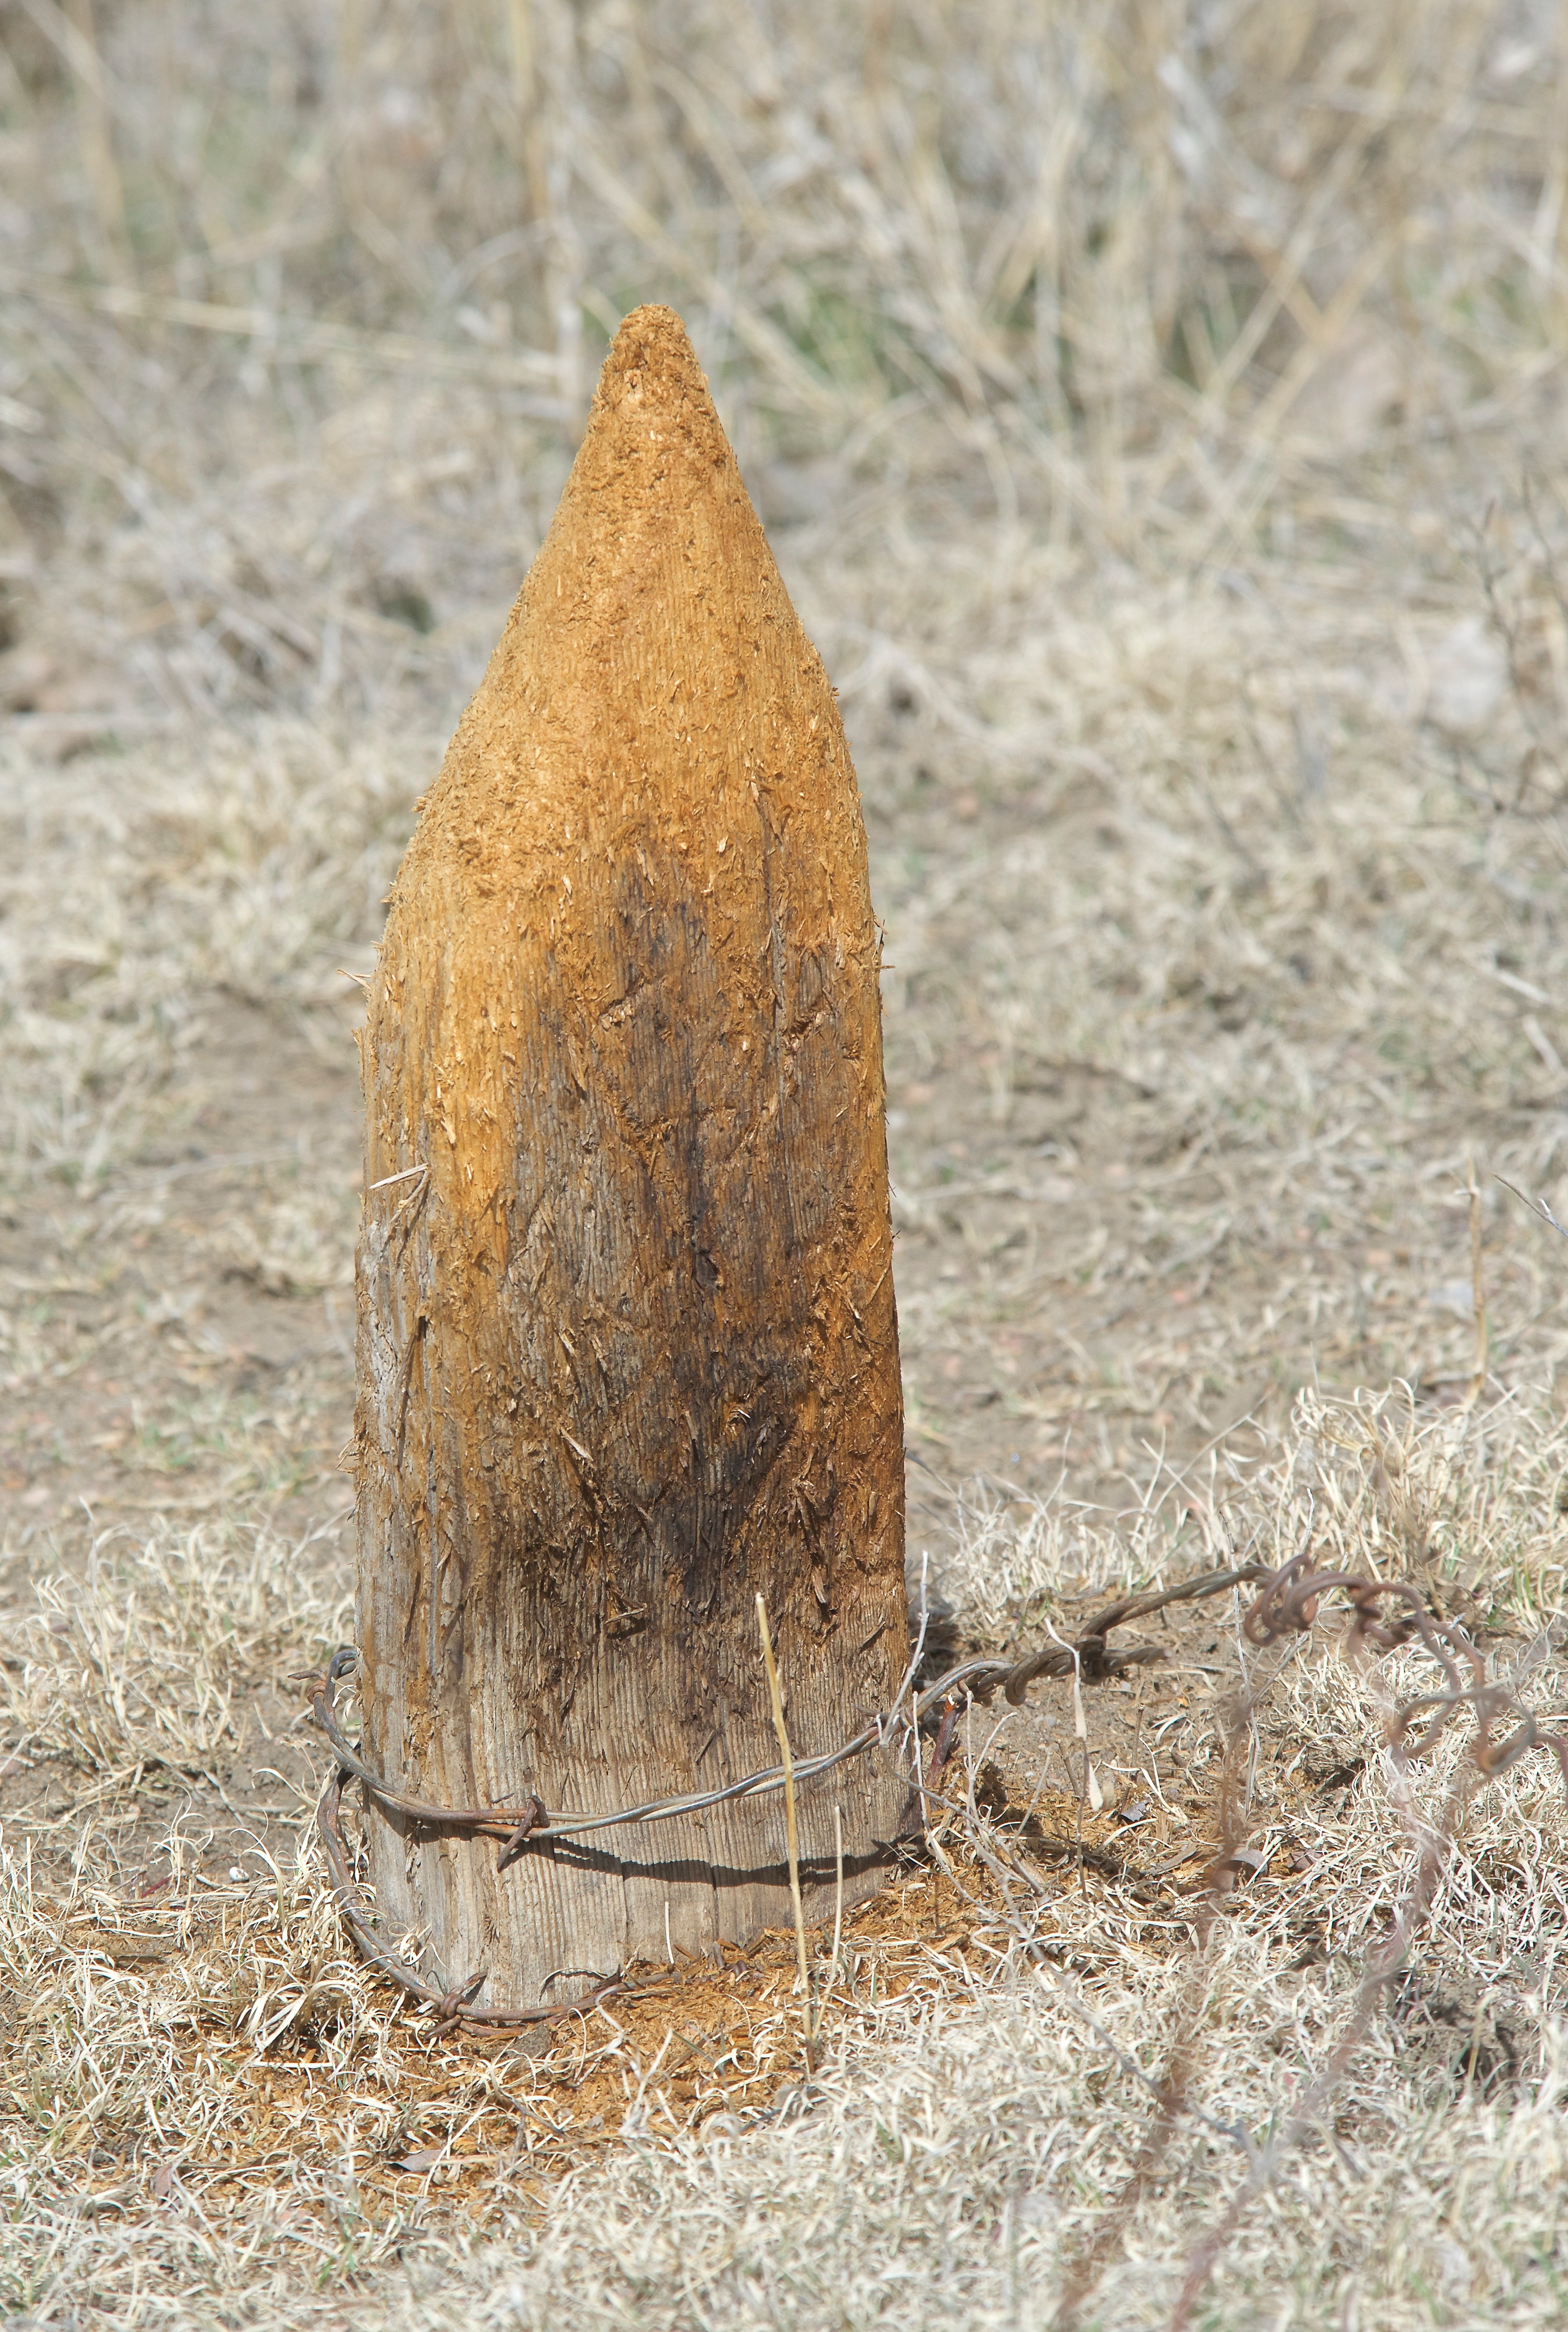 Fence Post Sharpened to a Nubbing by Deer